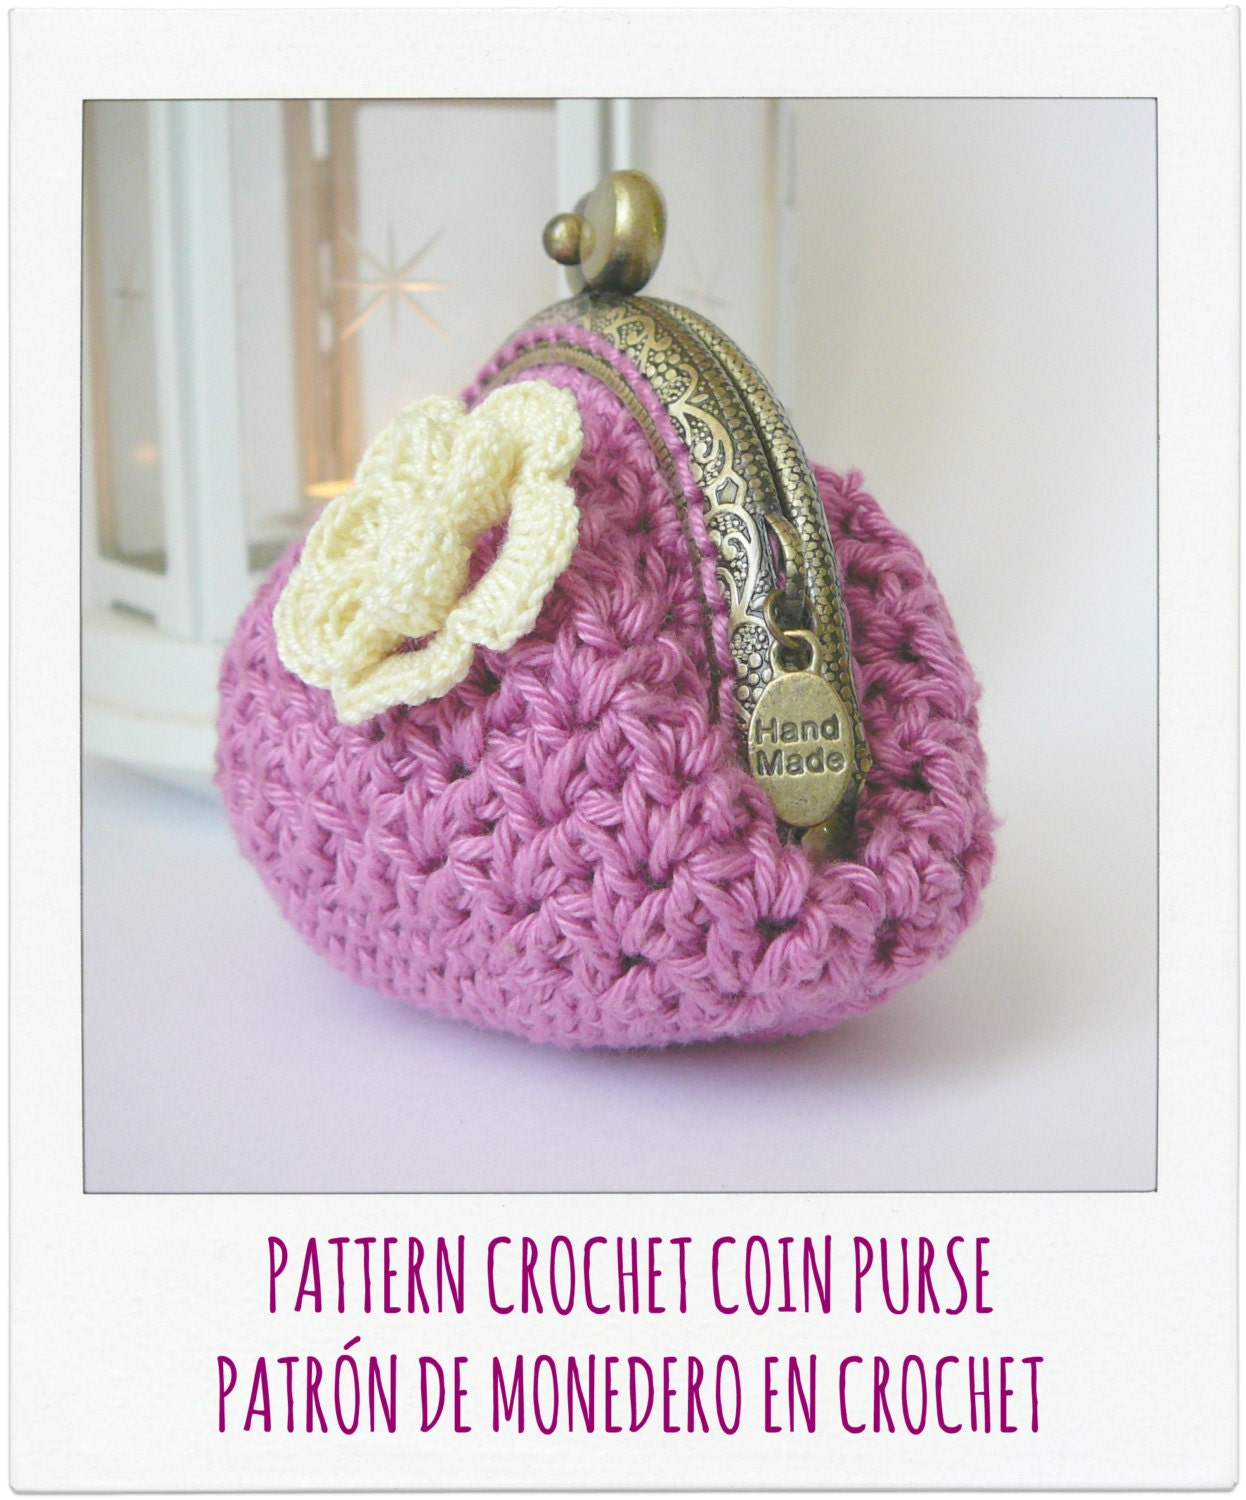 Coin Purse Crochet Pattern : PATTERN Crochet Coin Purse Model n? 6 by PitusasyPetetes on Etsy